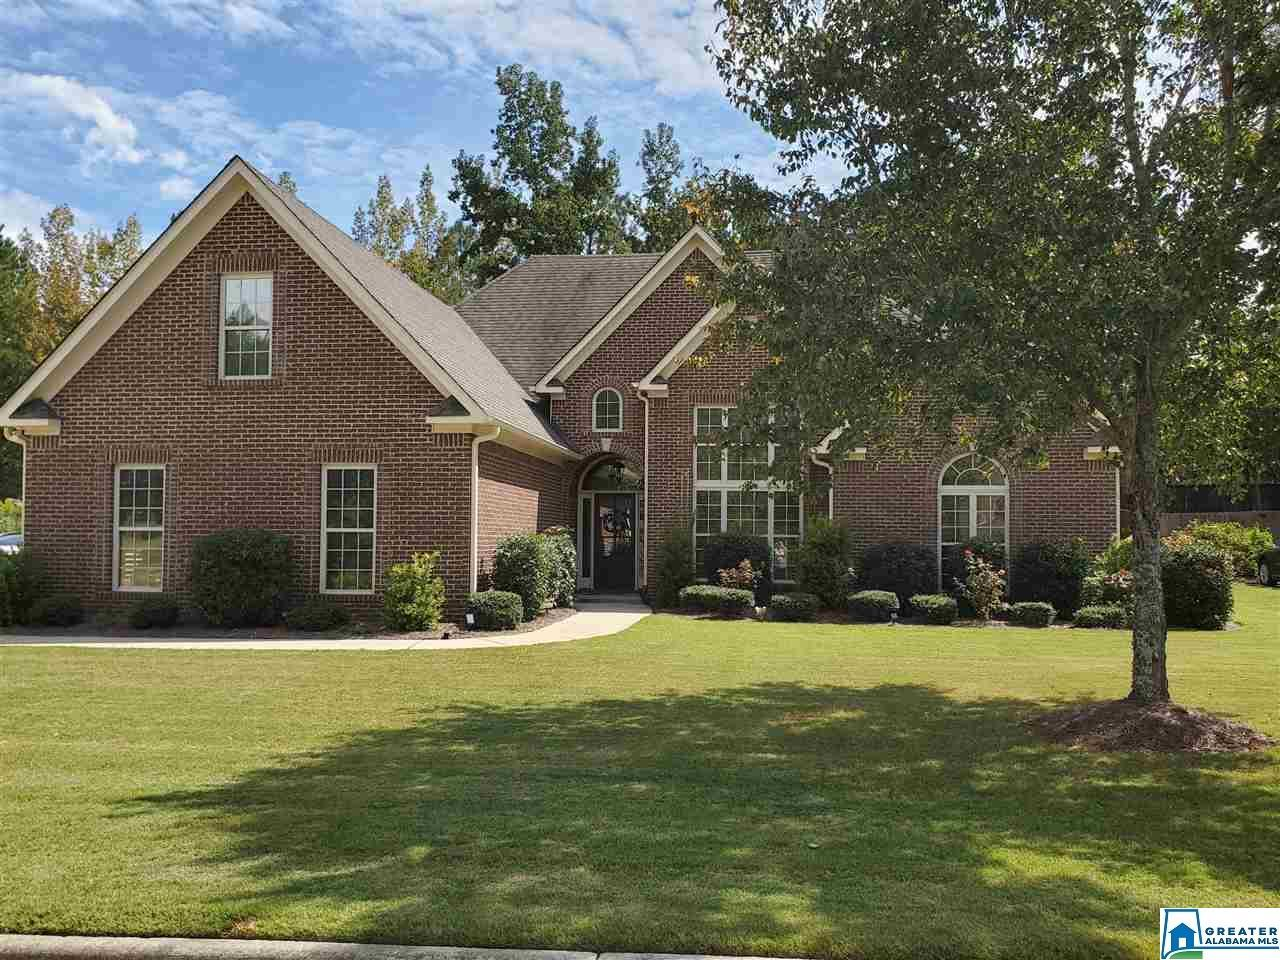 9555 AMBROSE LN, Kimberly, AL 35091 - MLS#: 896589